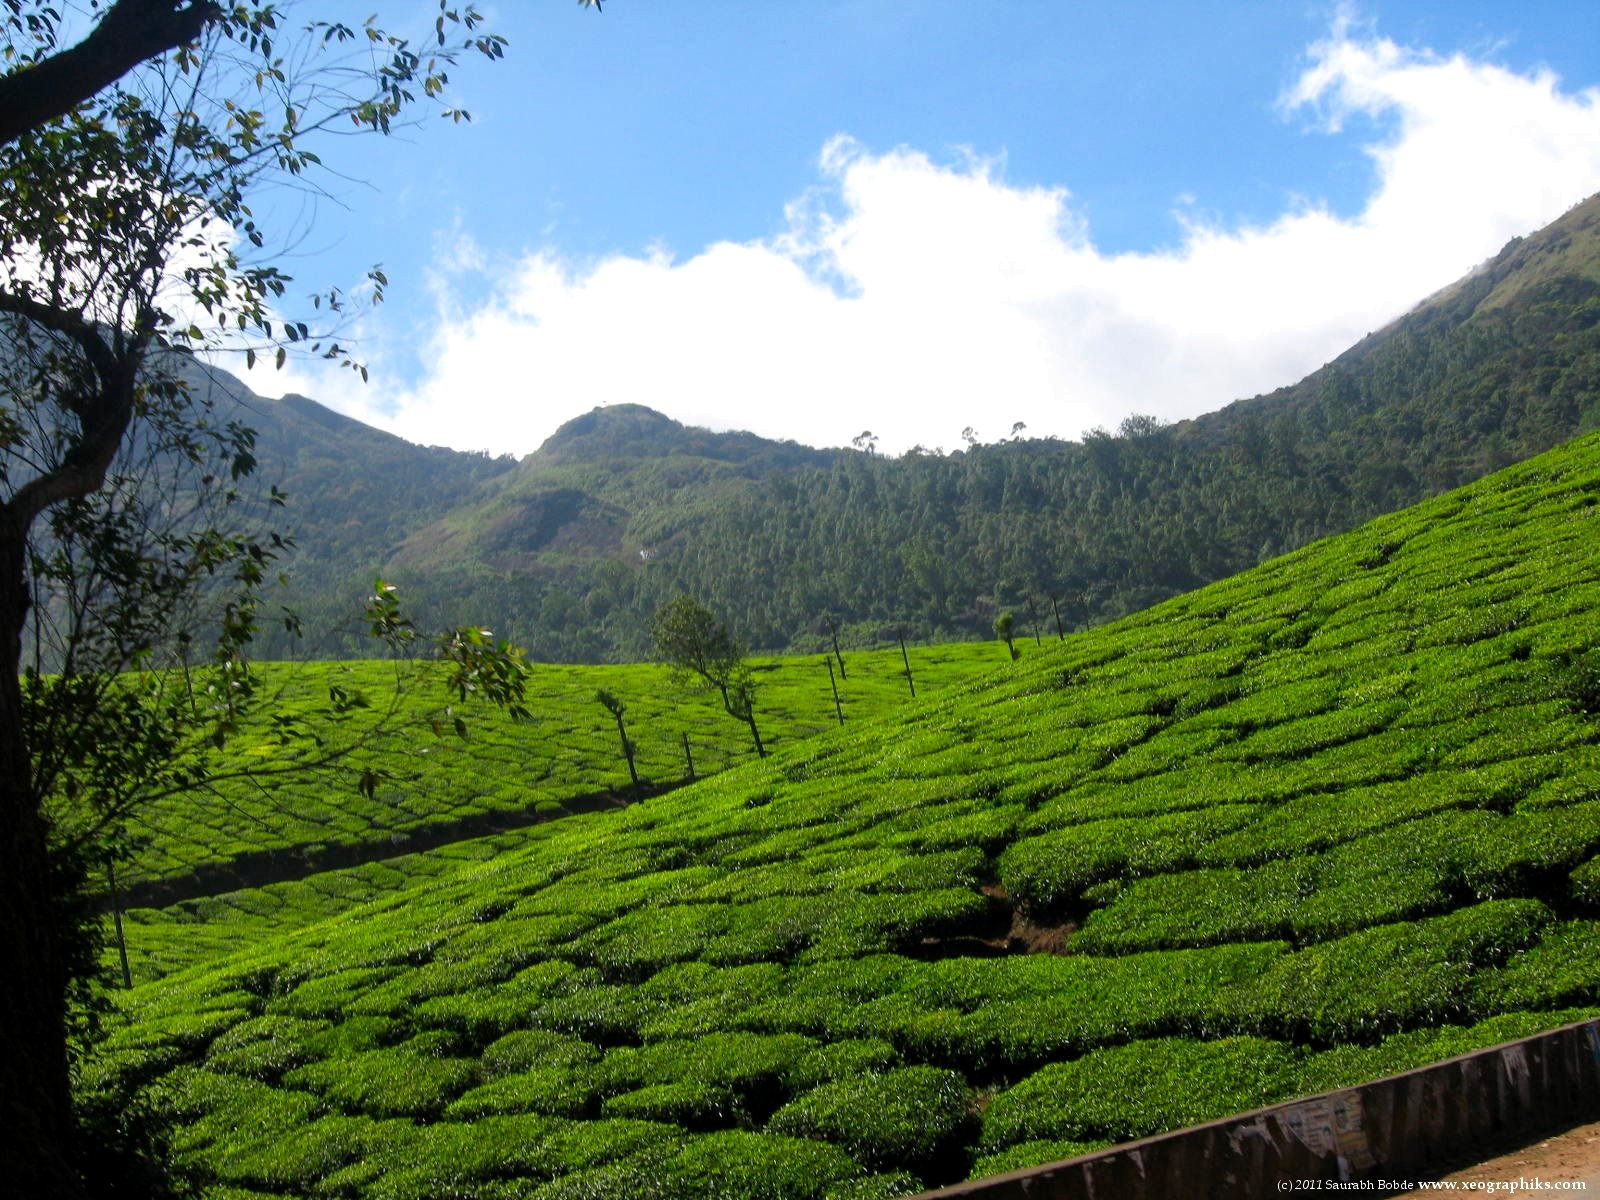 A stunning vista and landscape is set ablaze by the smoking clouds in the beautiful tea plantations at Munnar, Kerala.